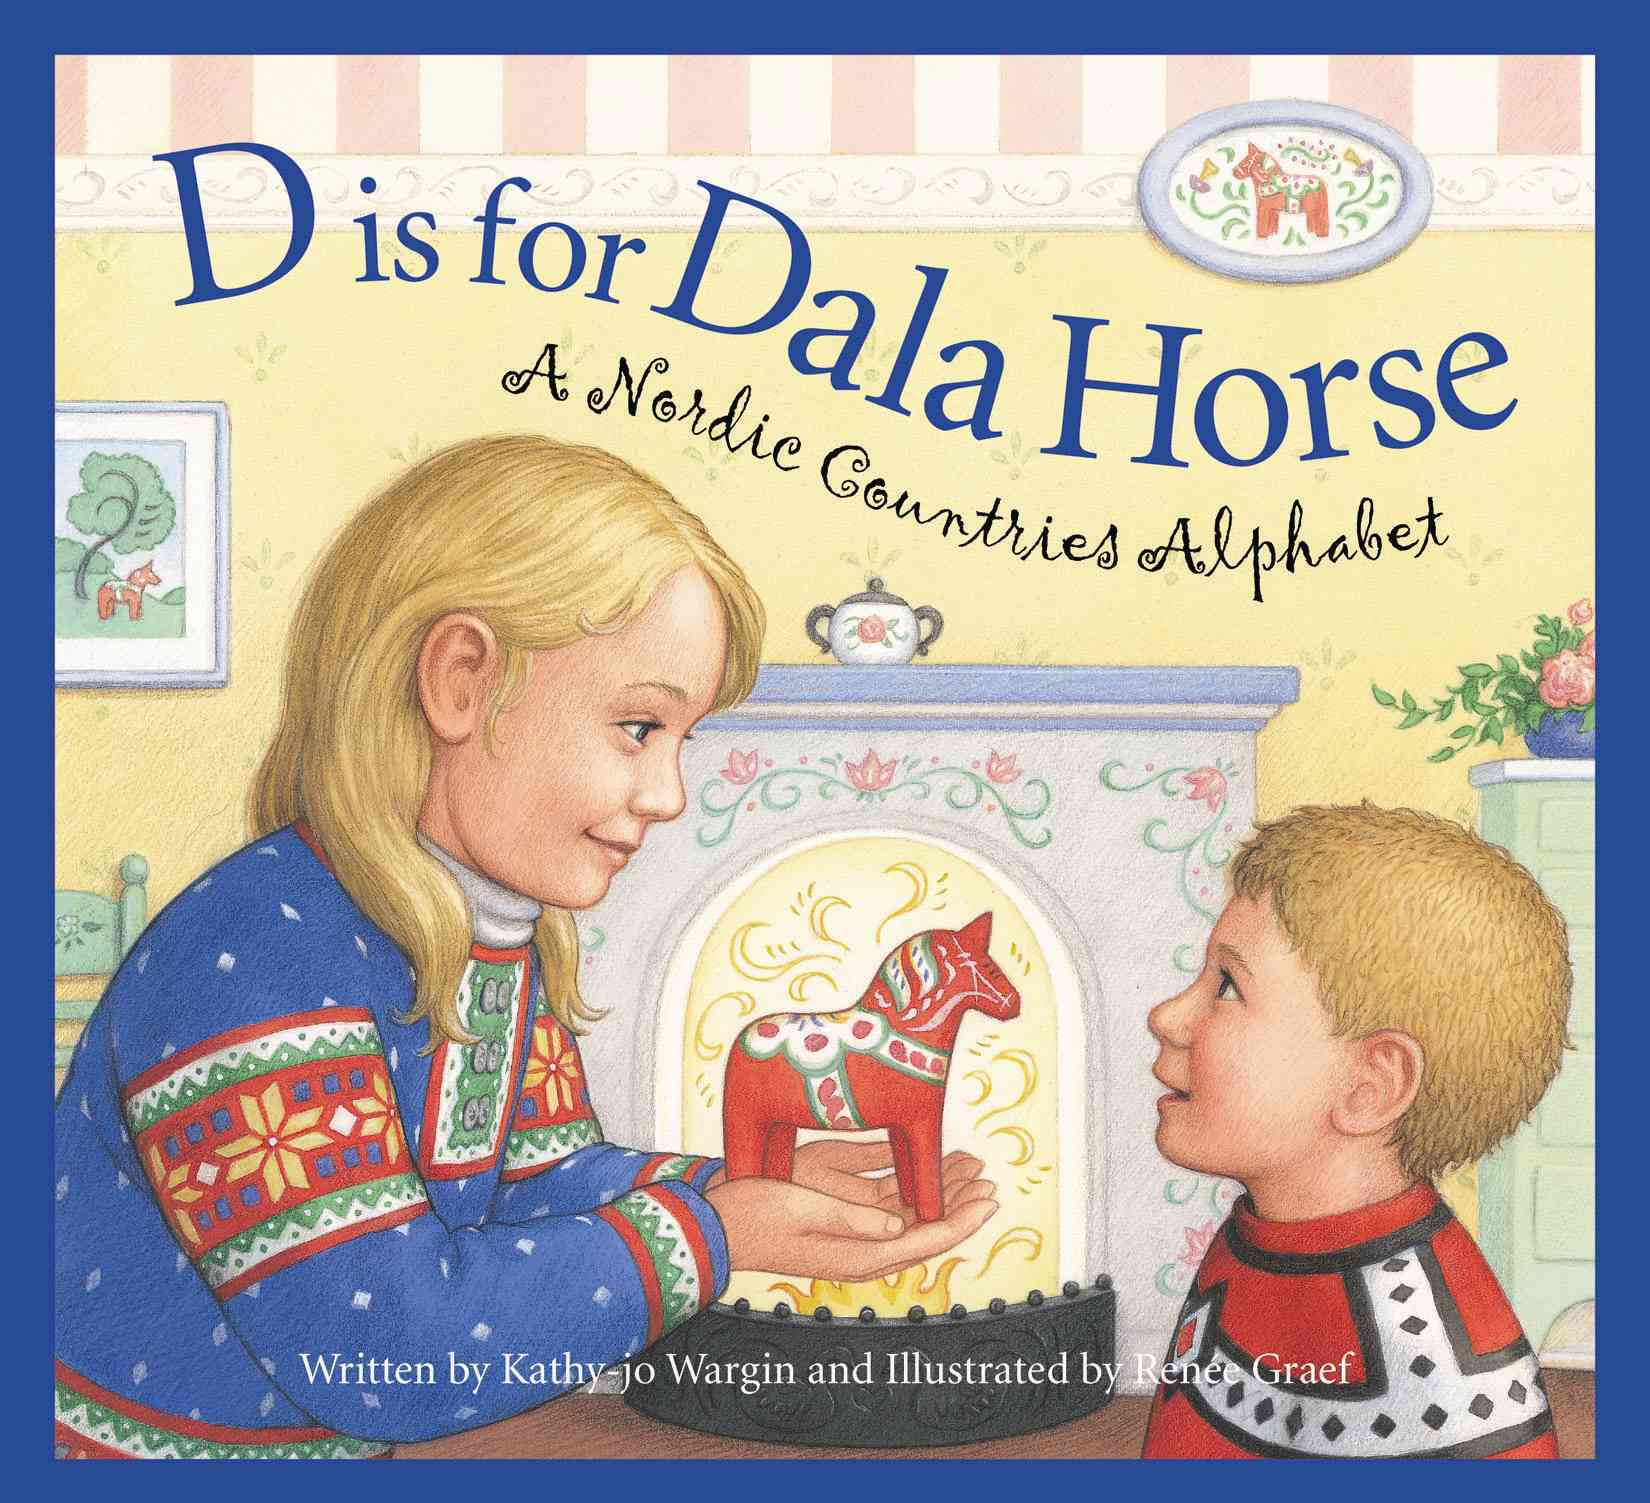 D is for Dala Horse: A Nordic Countries Alphabet (Hardcover)